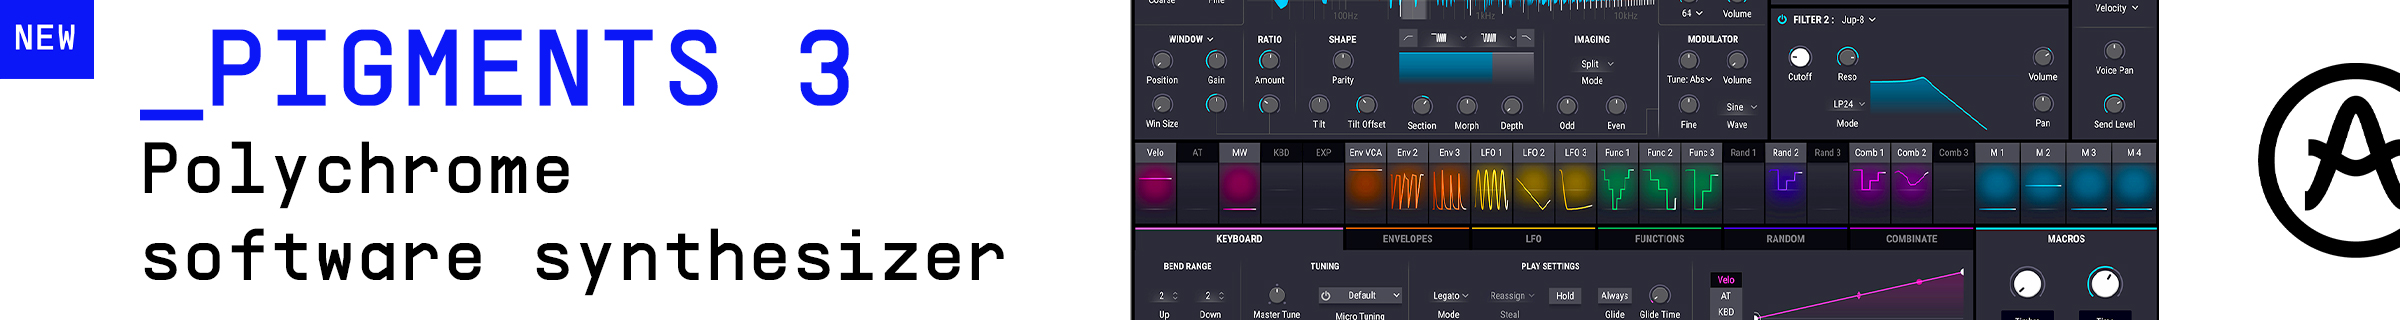 Ten of the Best Mobile Apps for Music Production